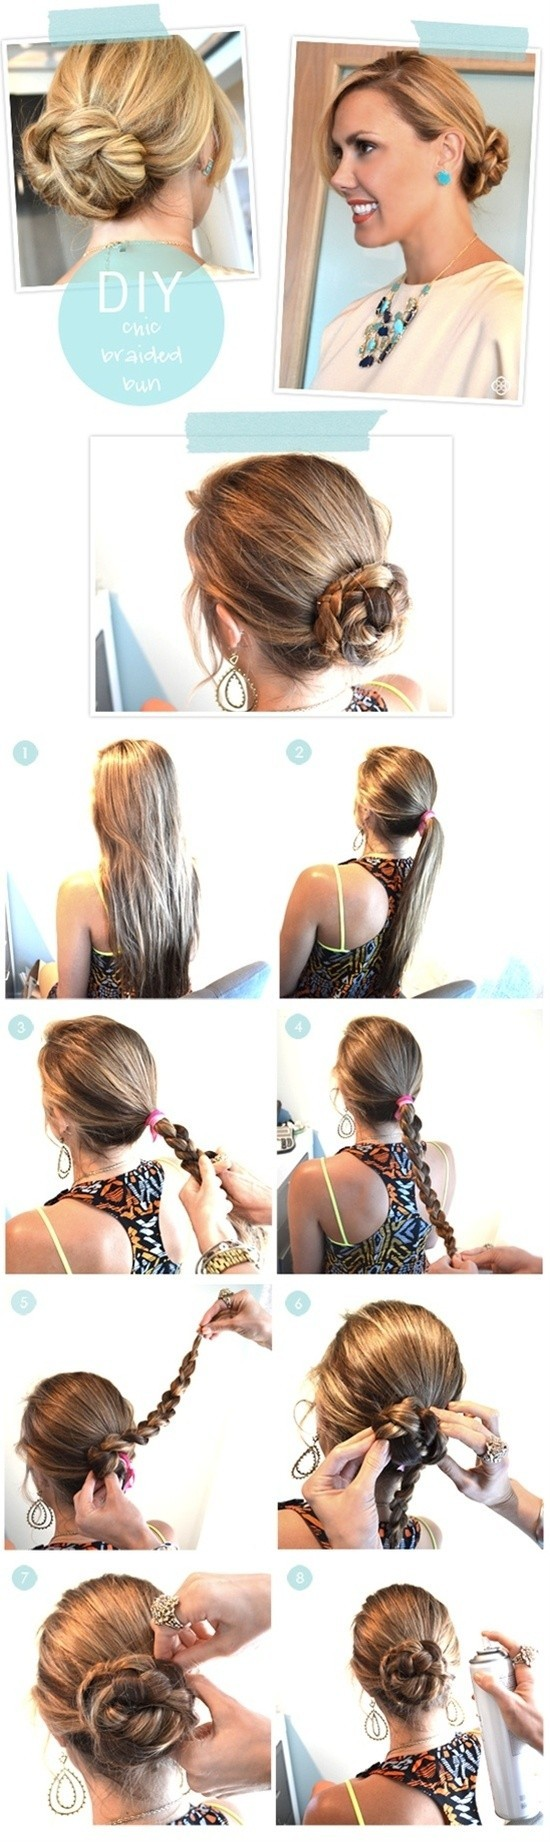 Hairstyles For Long Hair Steps PictureFuneral Program Designs